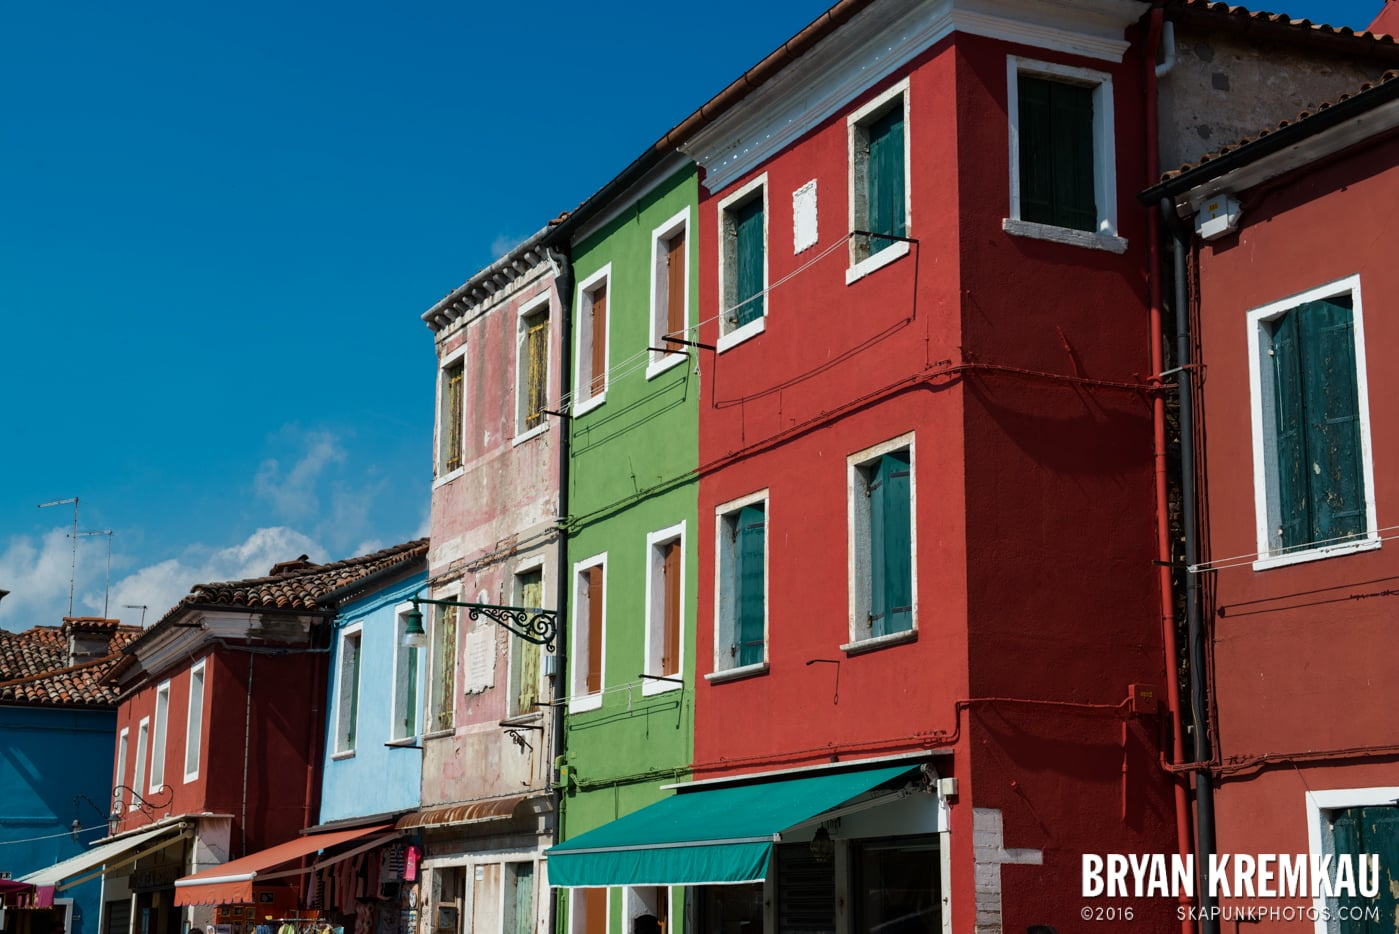 Italy Vacation - Day 6: Murano, Burano, Venice - 9.14.13 (65)